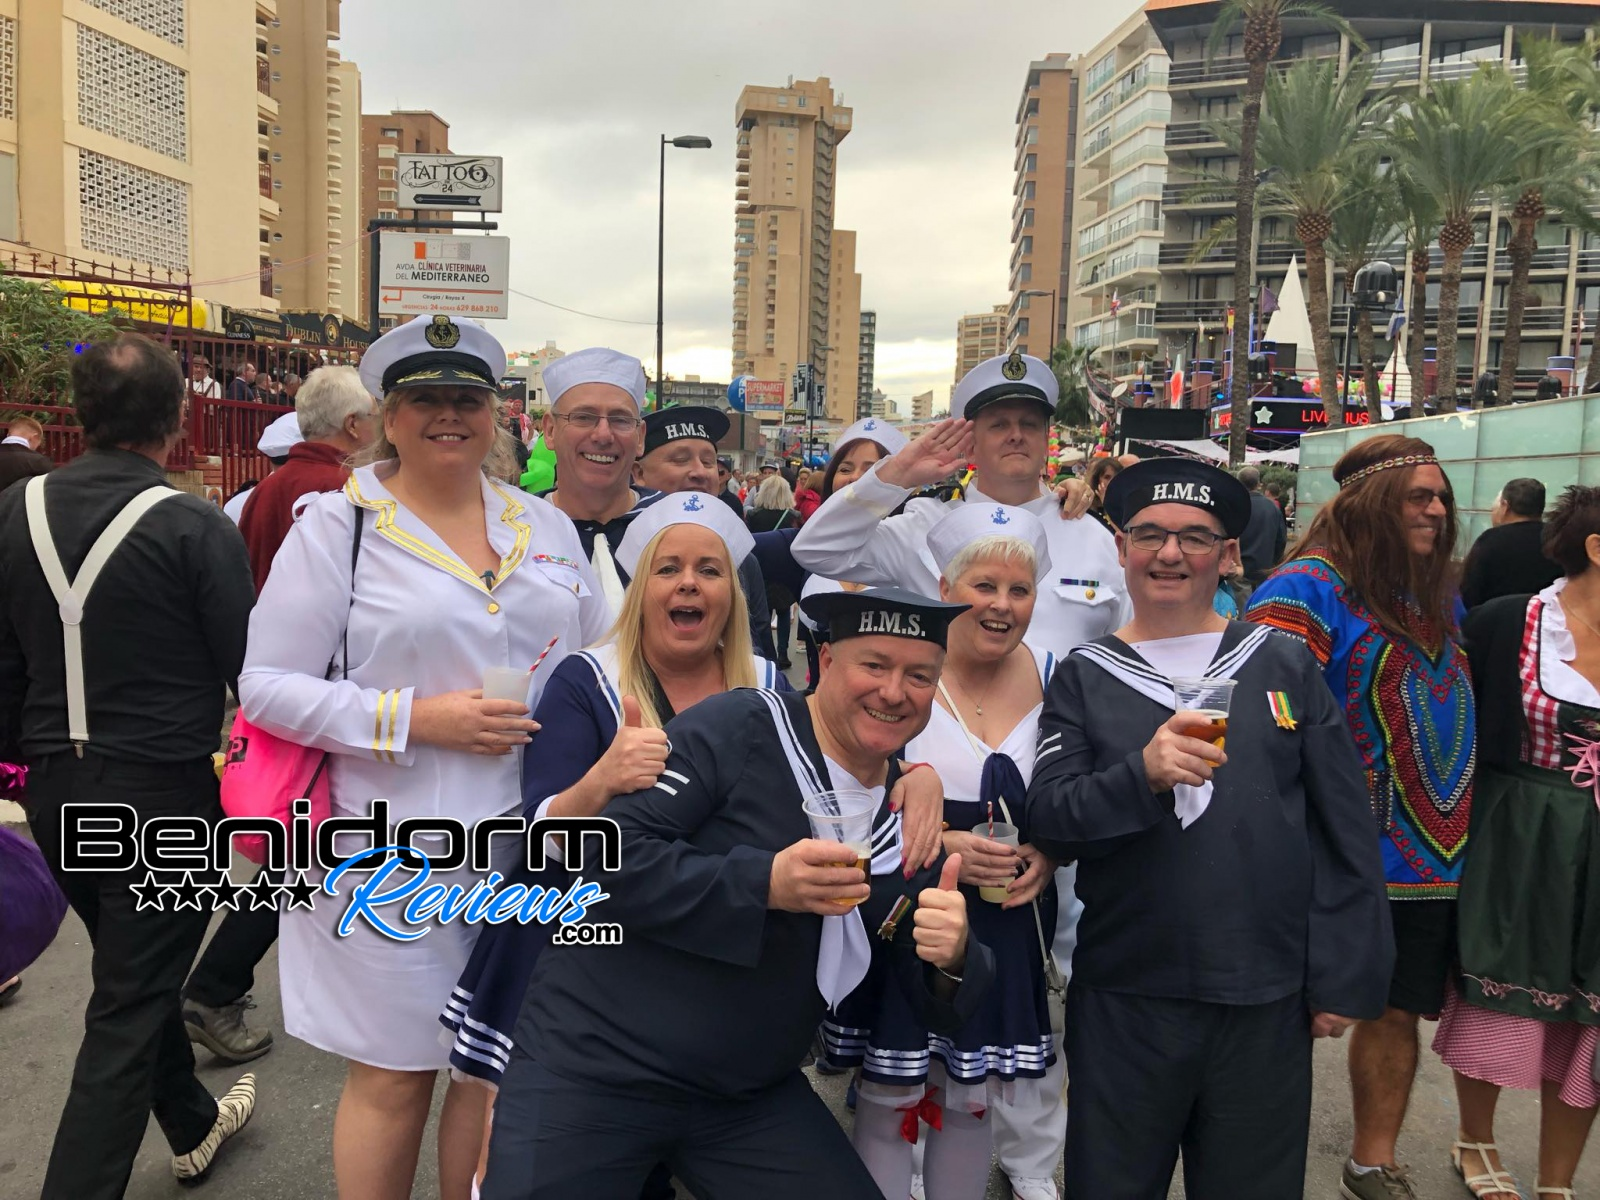 Benidorm-Fiestas-2019-Fancy-Dress-172